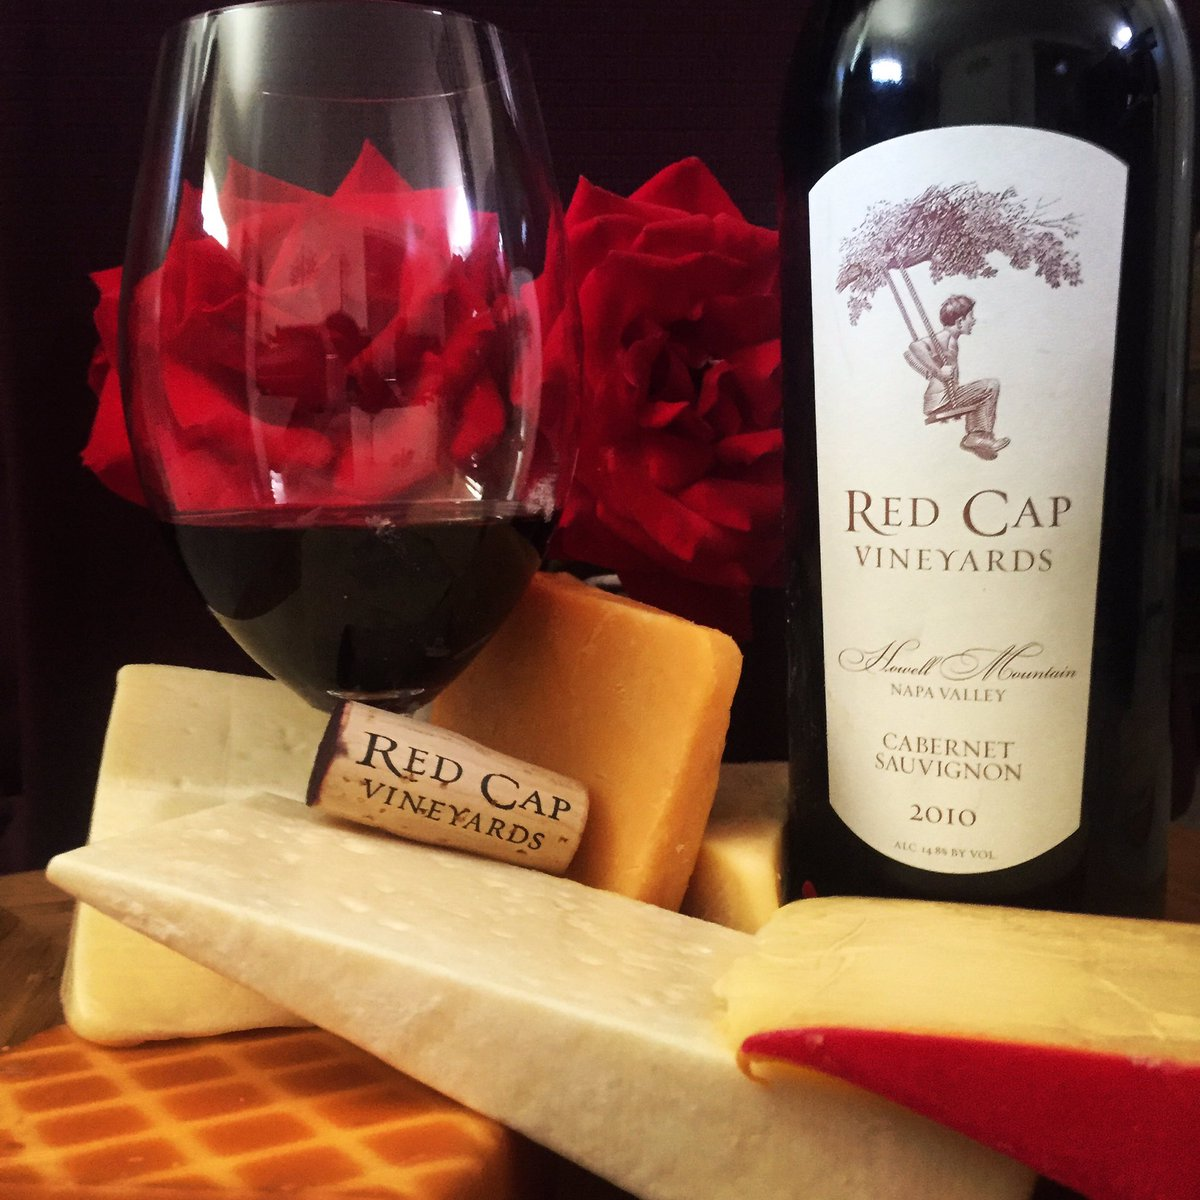 #CabernetDay #cheesy @redcapvineyards #2010 #cabernetsauvignon #HowellMountain notes of earth, mocha, black currants https://t.co/ETPskC5JIO